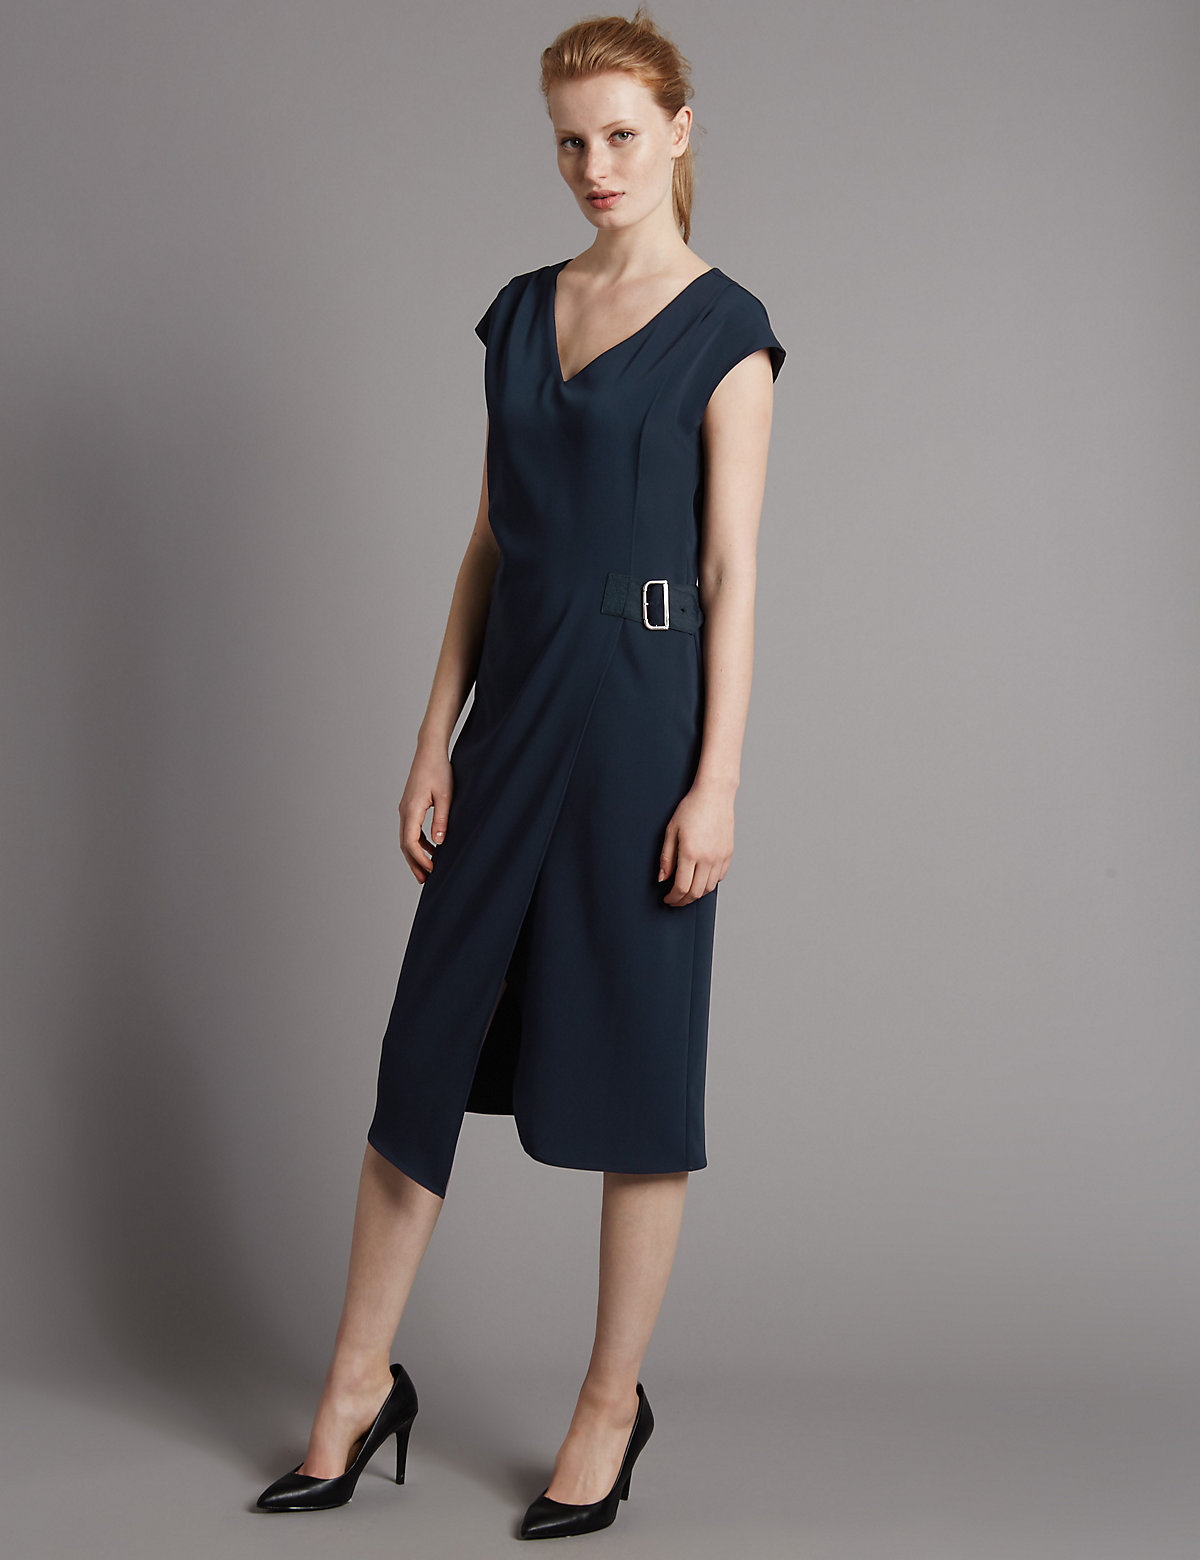 Autograph Buckle Cap Sleeve Shift Dress